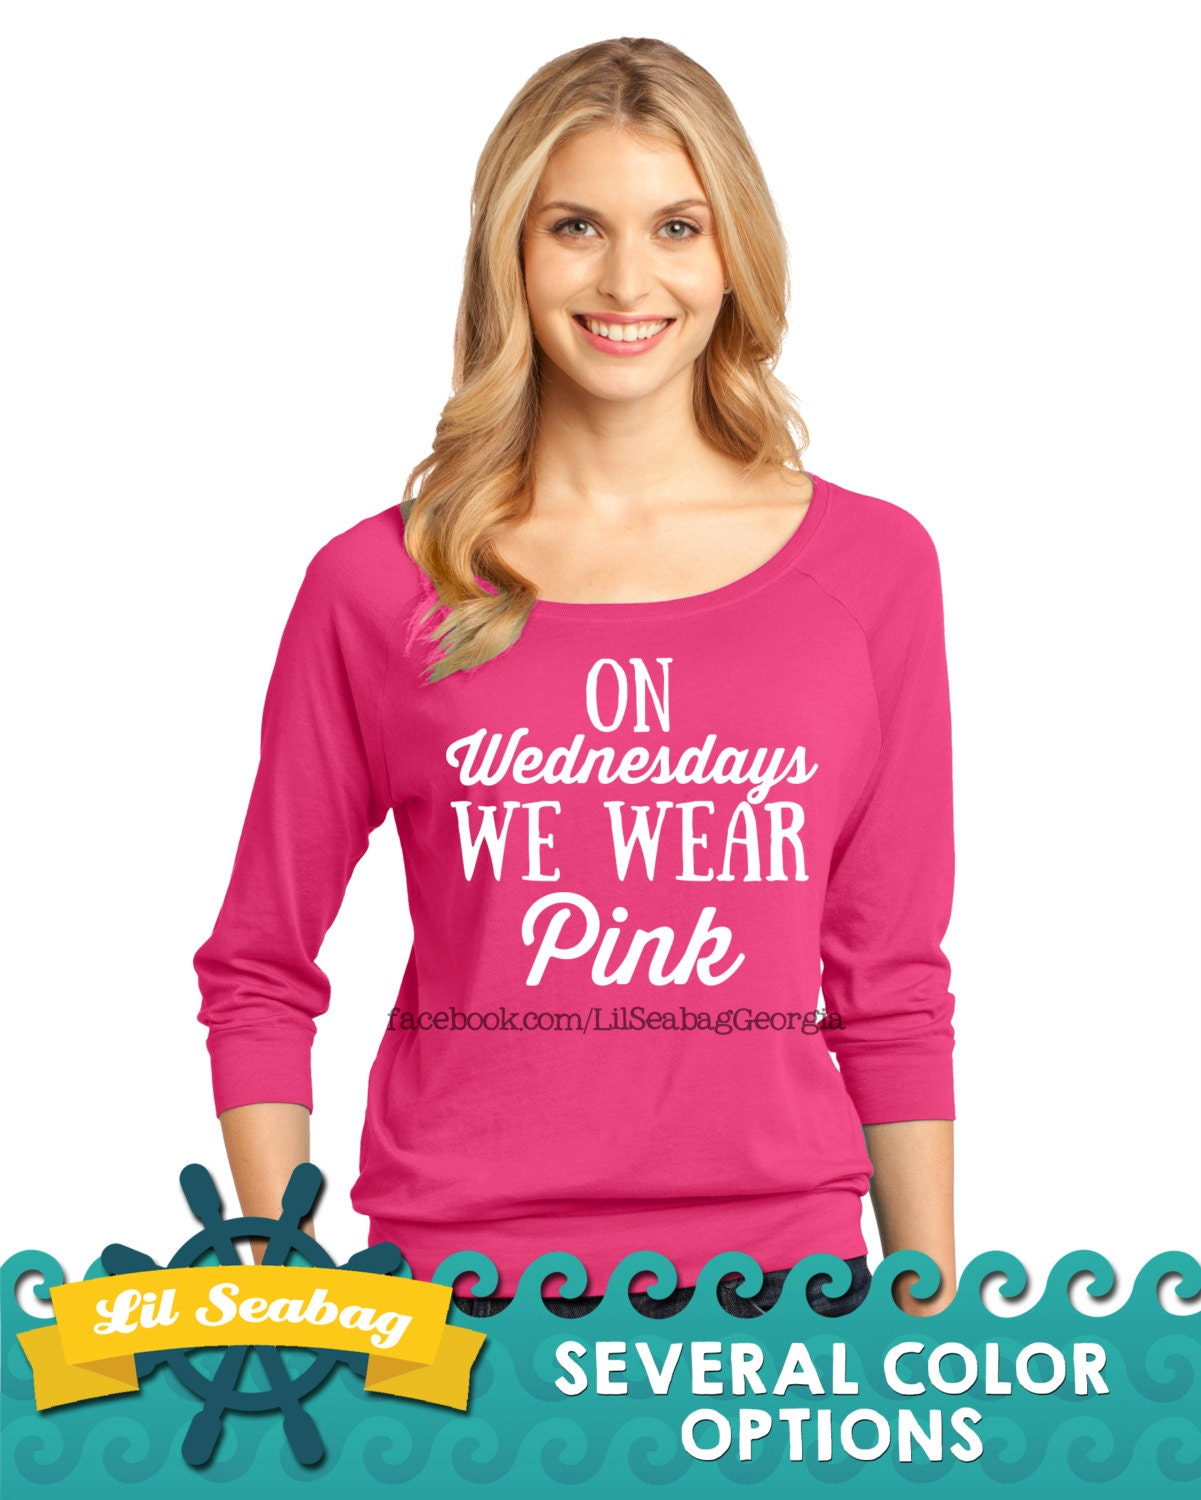 Mean Girls Quotes On Wednesdays We Wear Pink: On Wednesdays We Wear Pink Shirt Pink Shirt Mean Girls